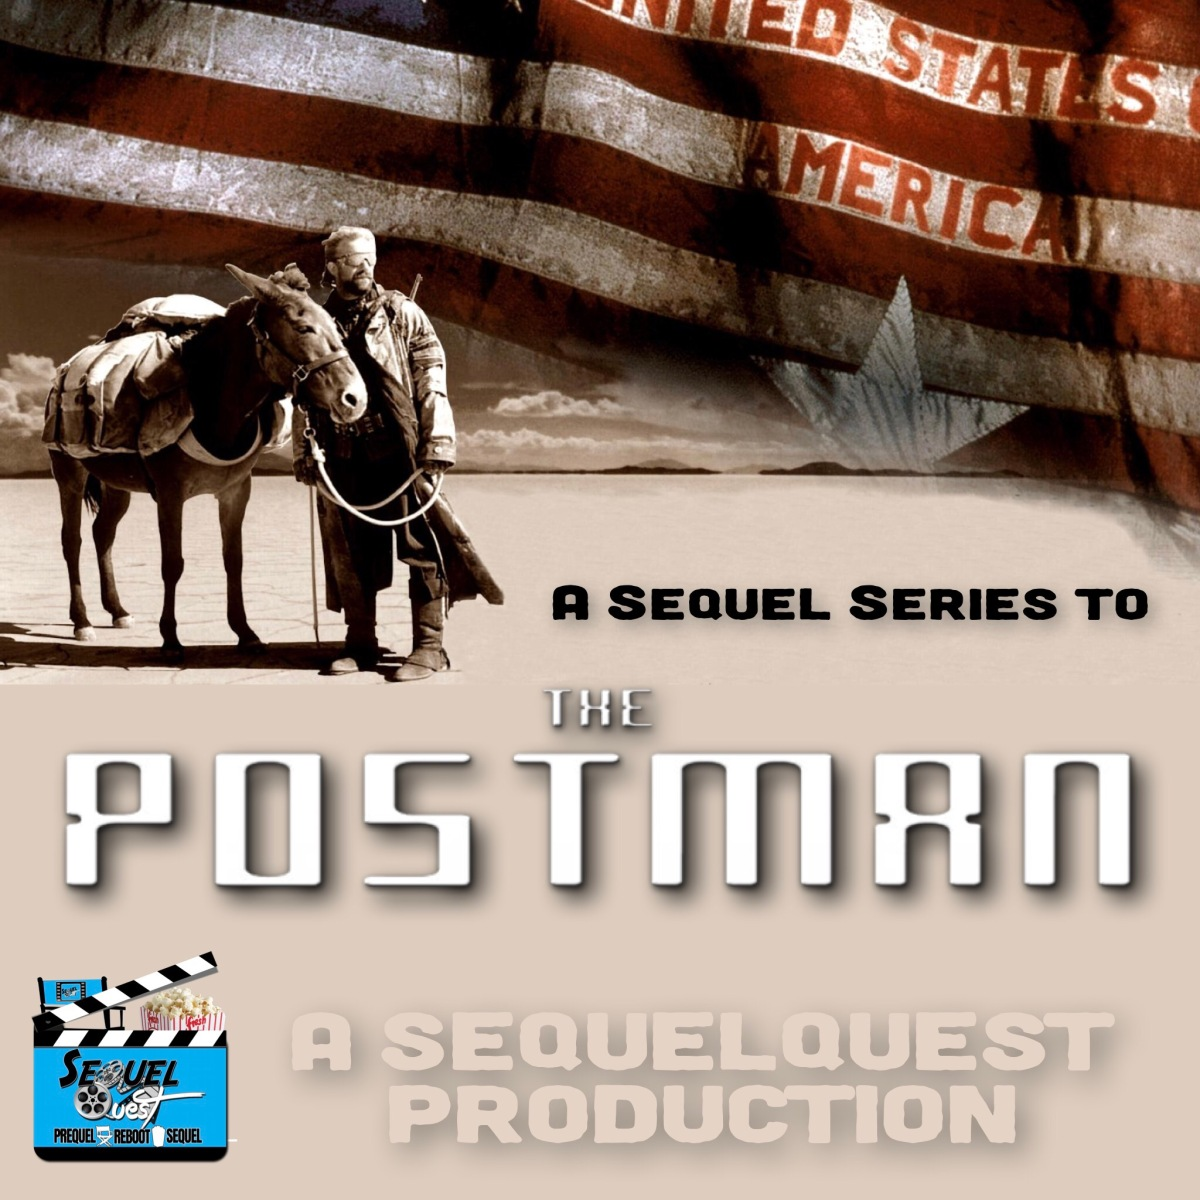 EP32 - The Postman Sequel